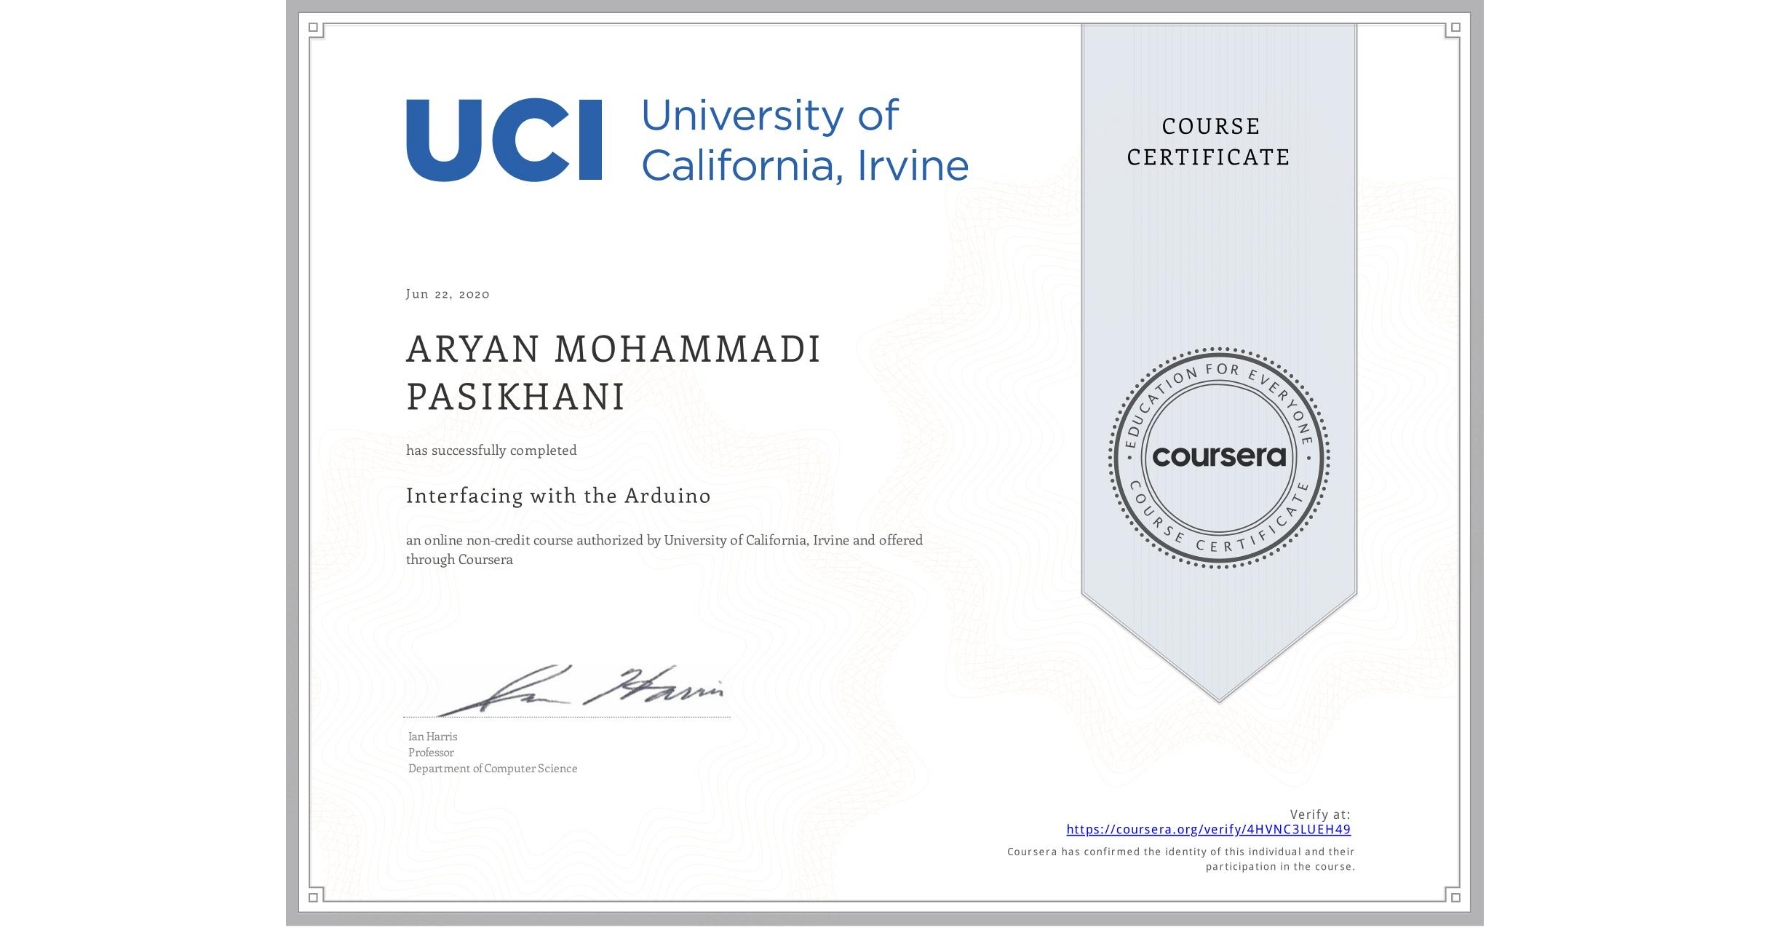 View certificate for ARYAN MOHAMMADI PASIKHANI, Interfacing with the Arduino, an online non-credit course authorized by University of California, Irvine and offered through Coursera